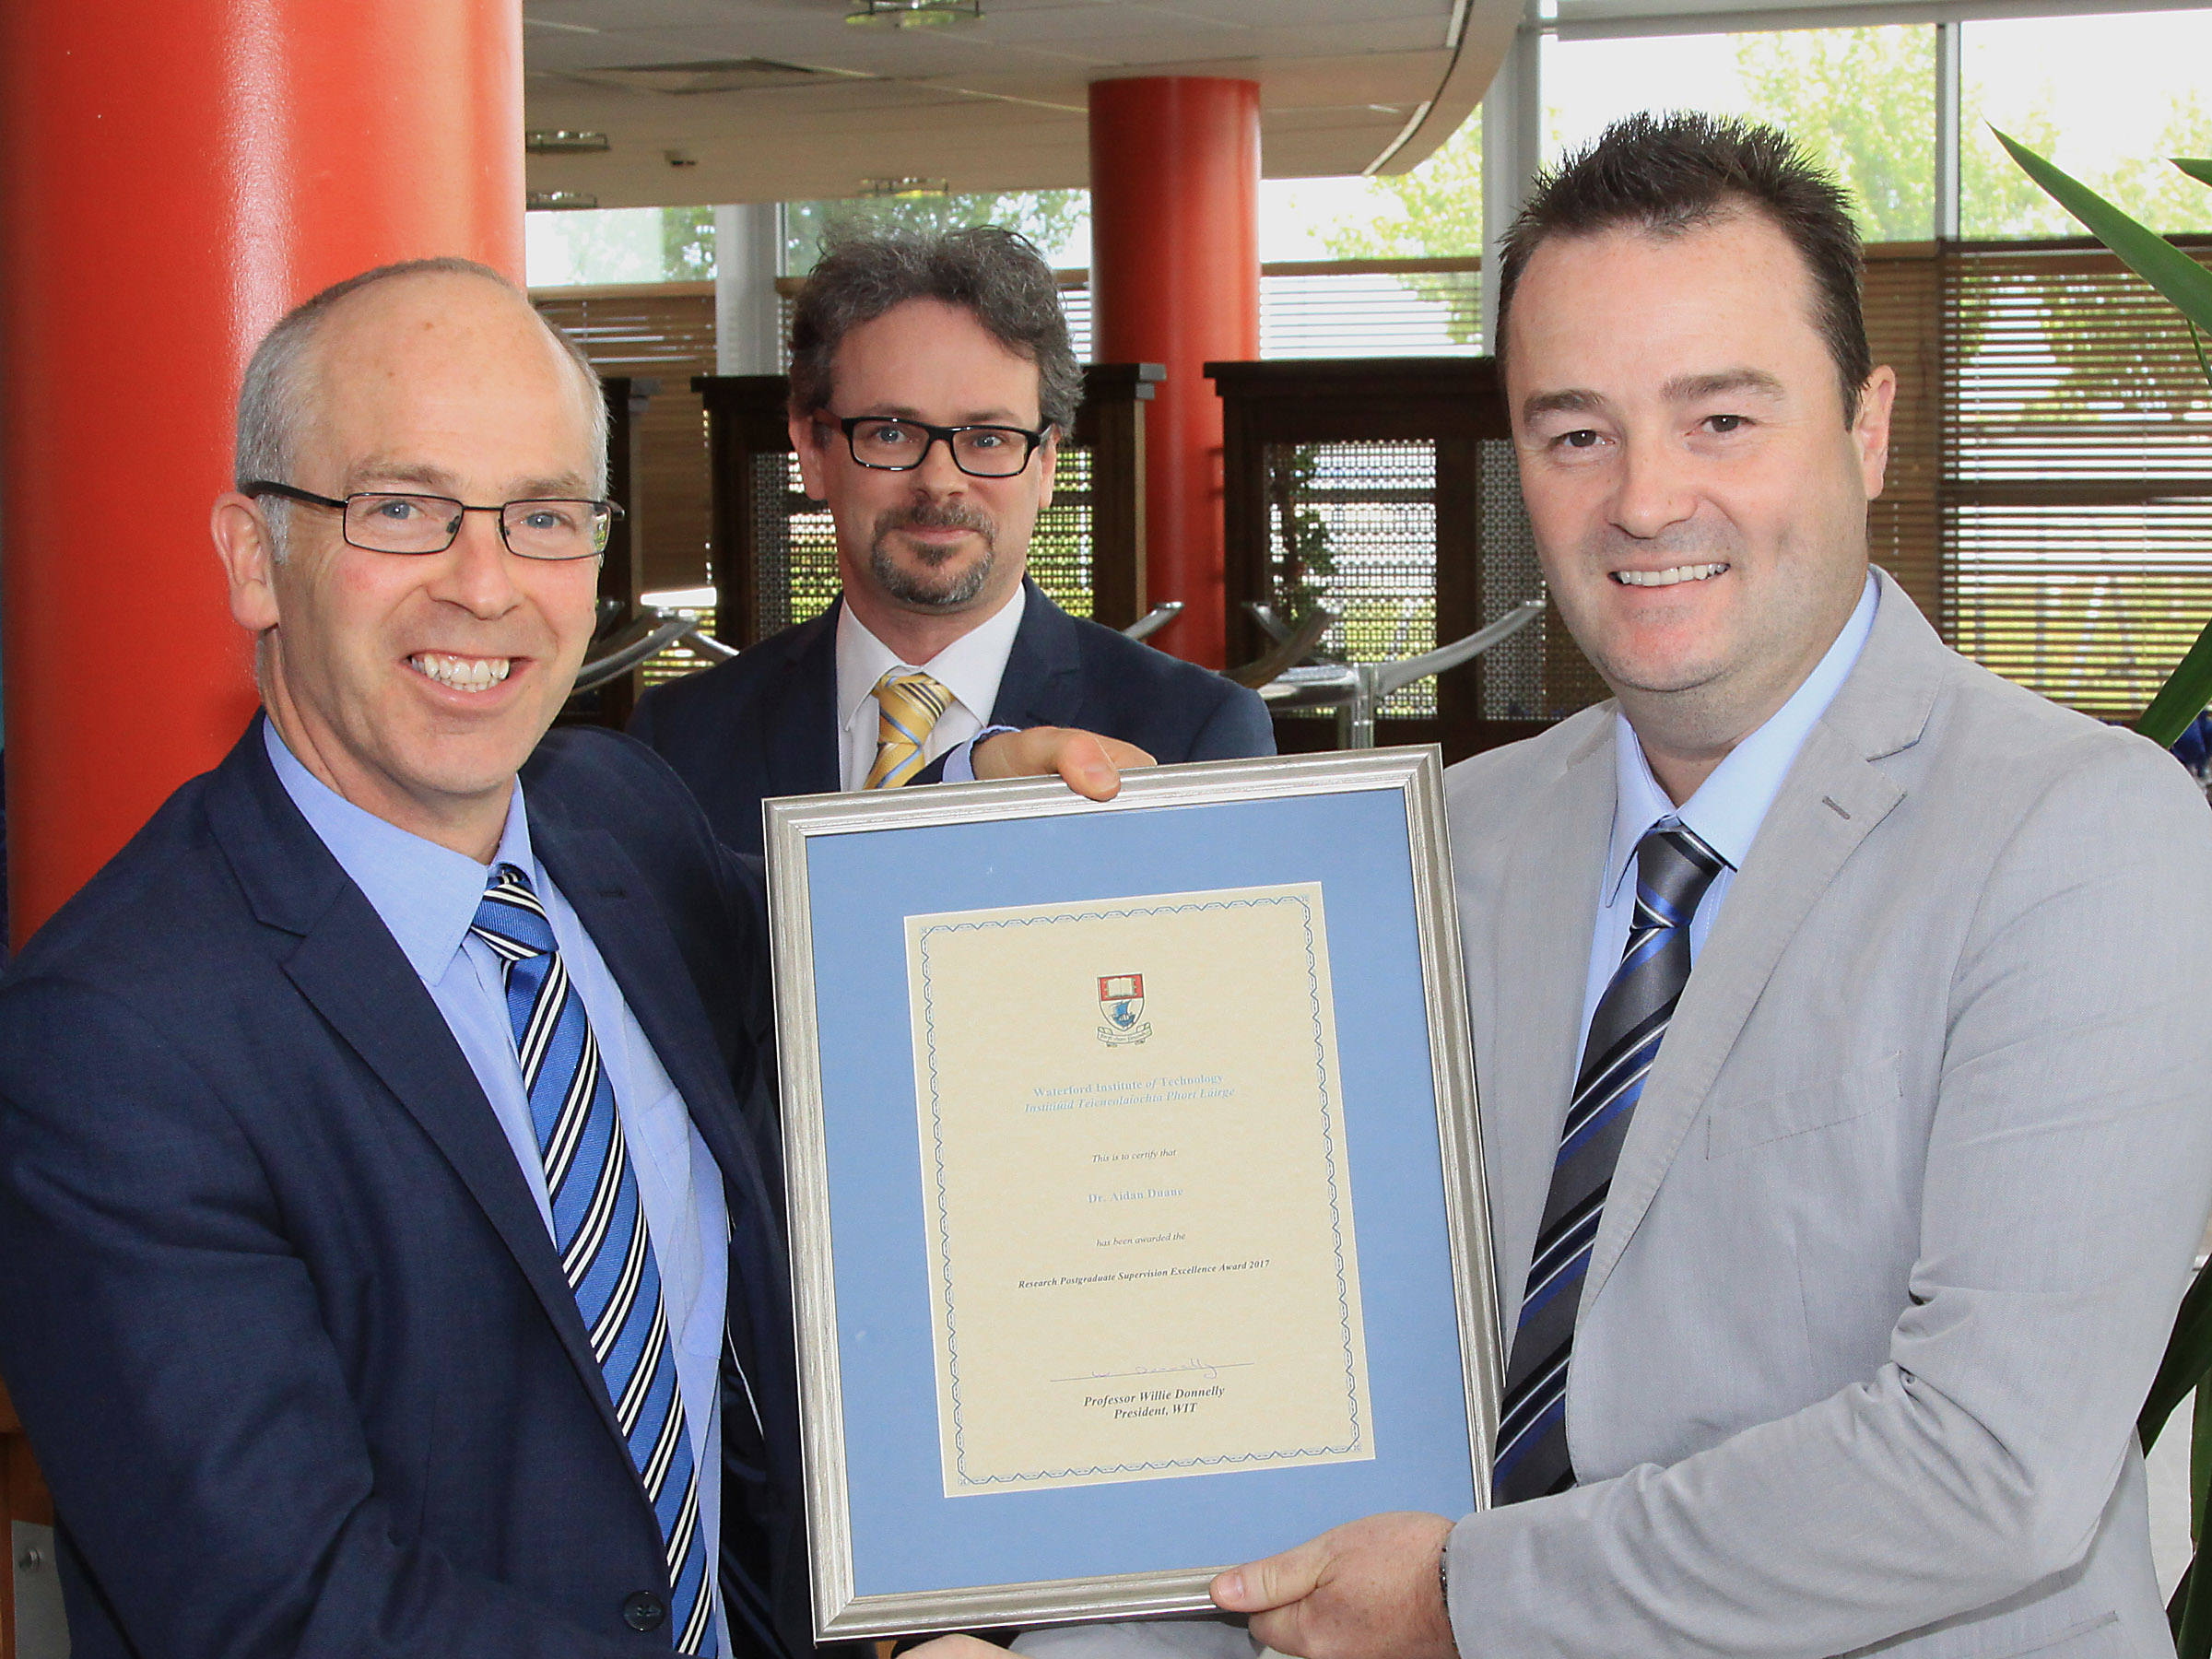 Pictured from left are: Dr Peter McLoughlin, Vice President of Research and Innovation and Dr Brendan Jennings, Head of Graduate Studies with Dr Aidan Duane